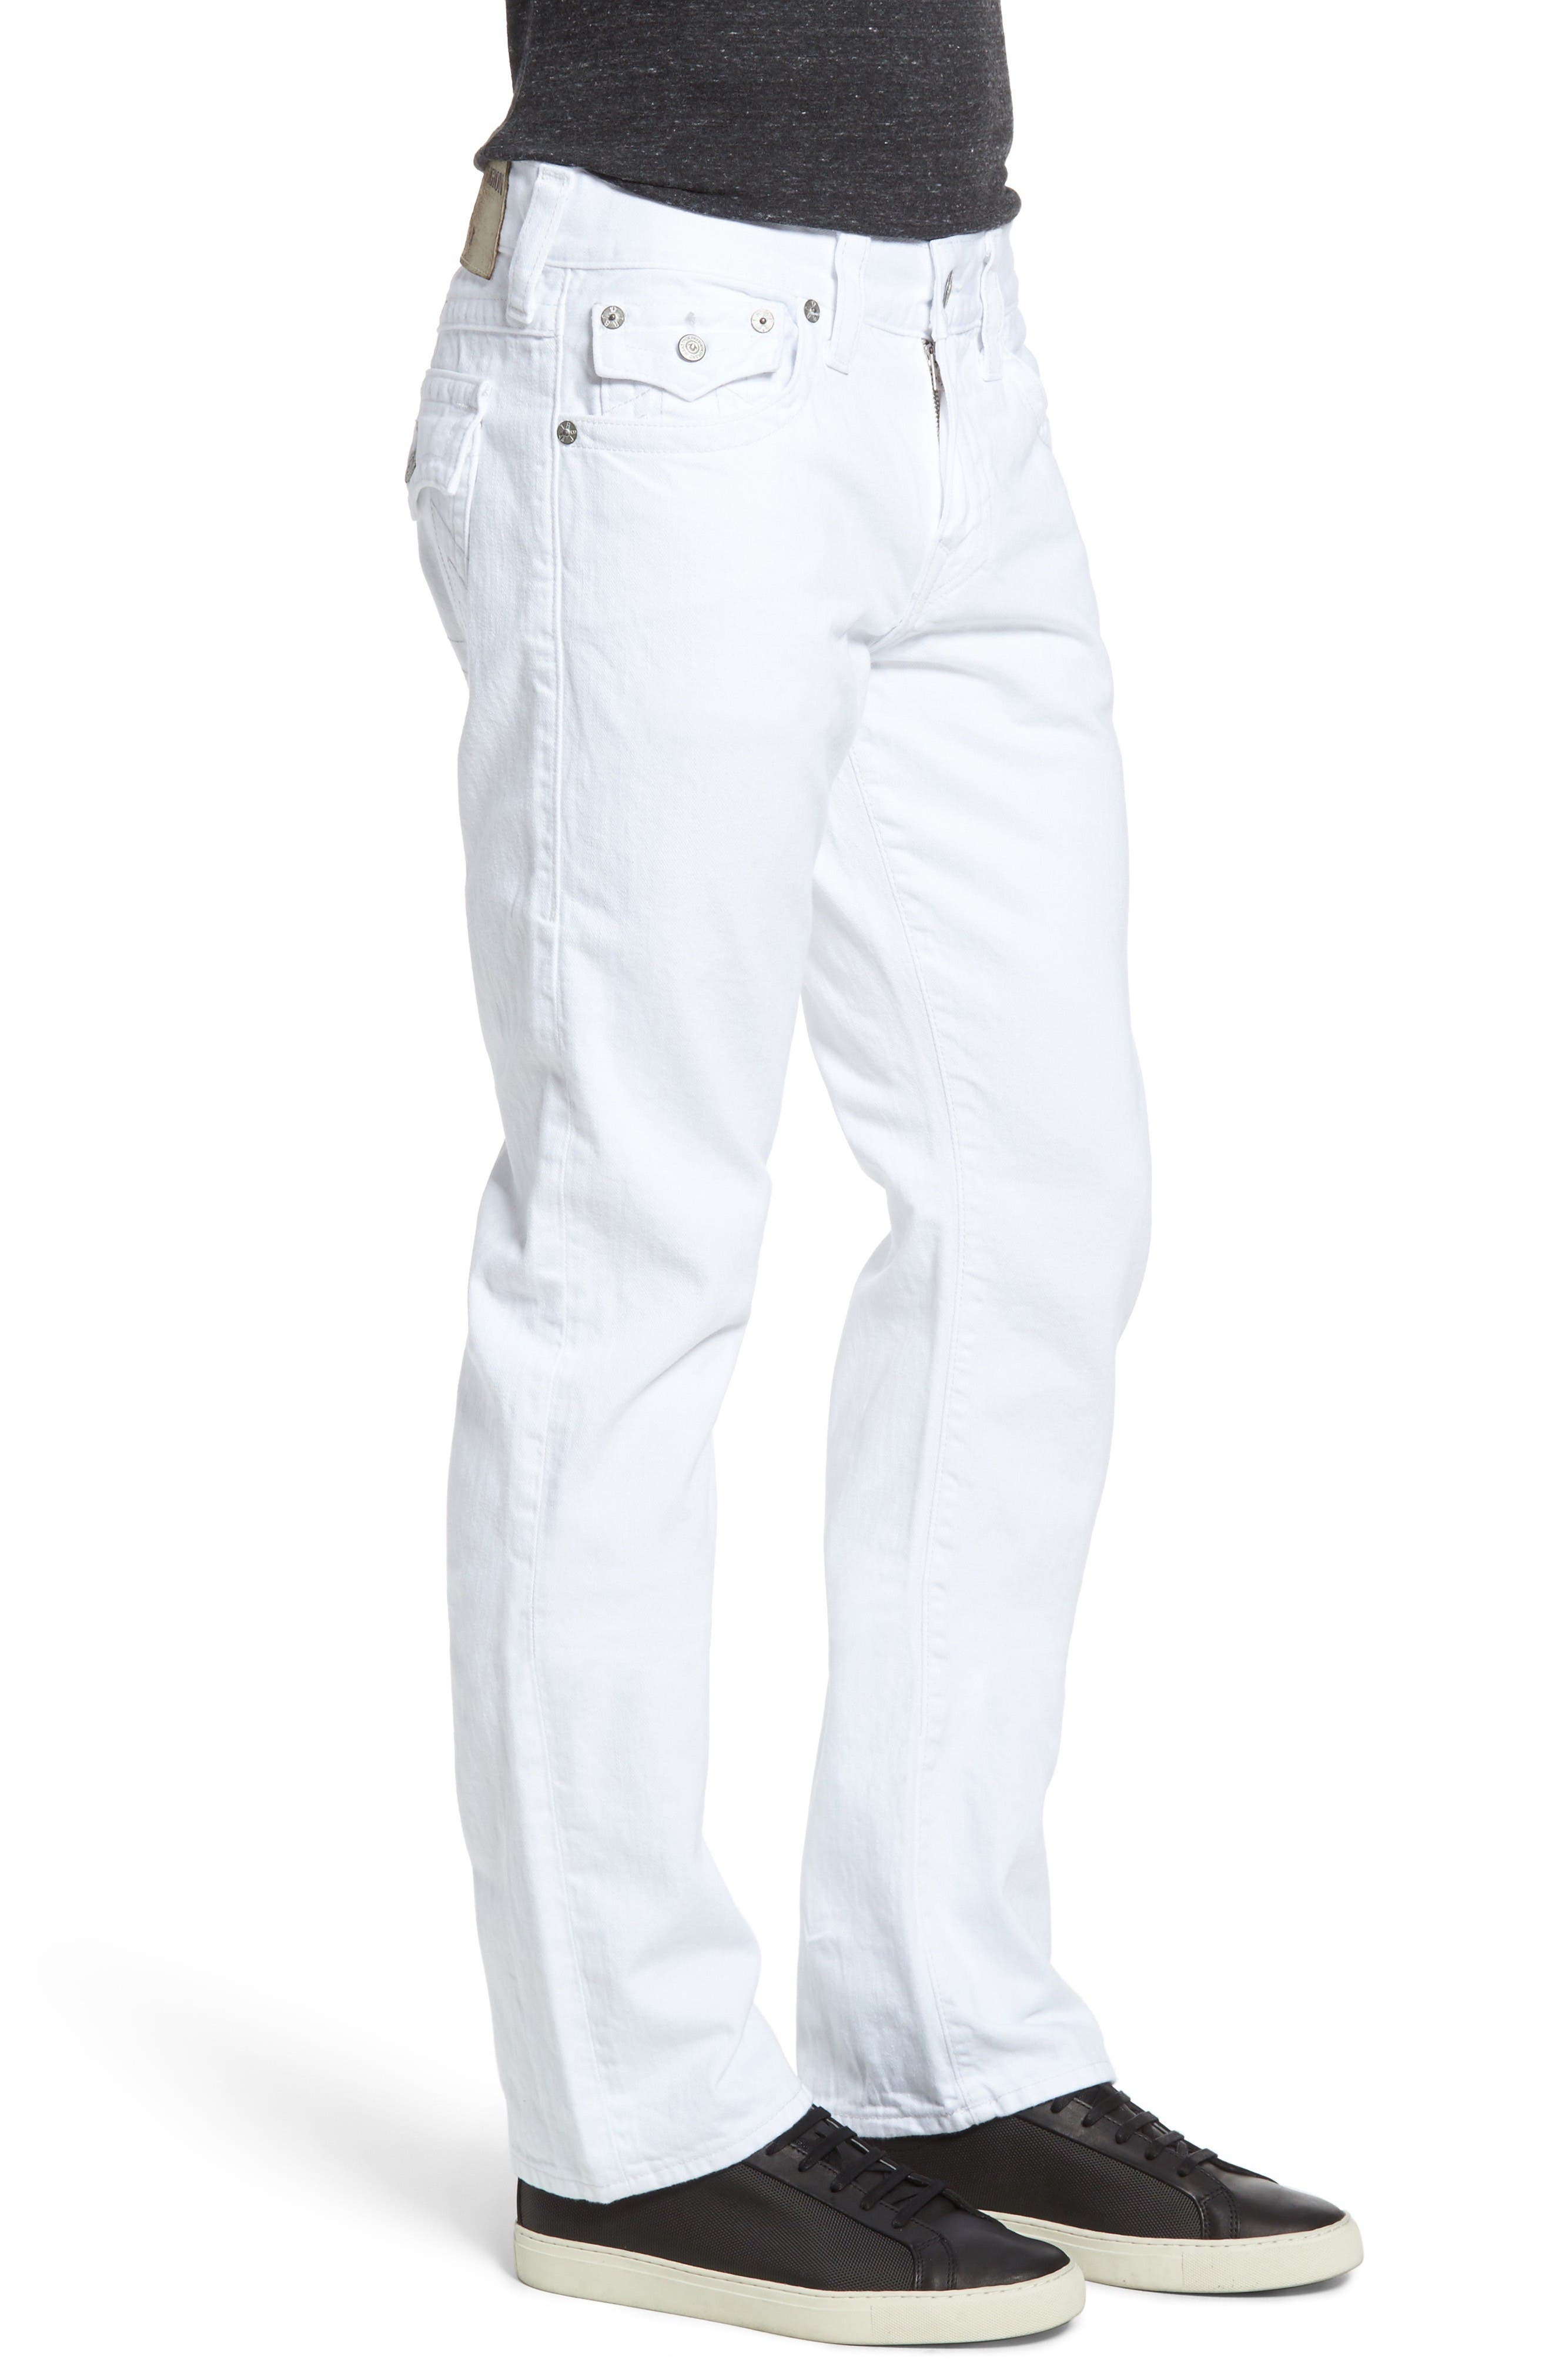 Alternate Image 3  - True Religion Brand Jeans Ricky Relaxed Fit Jeans (Optic White) (Regular & Big)